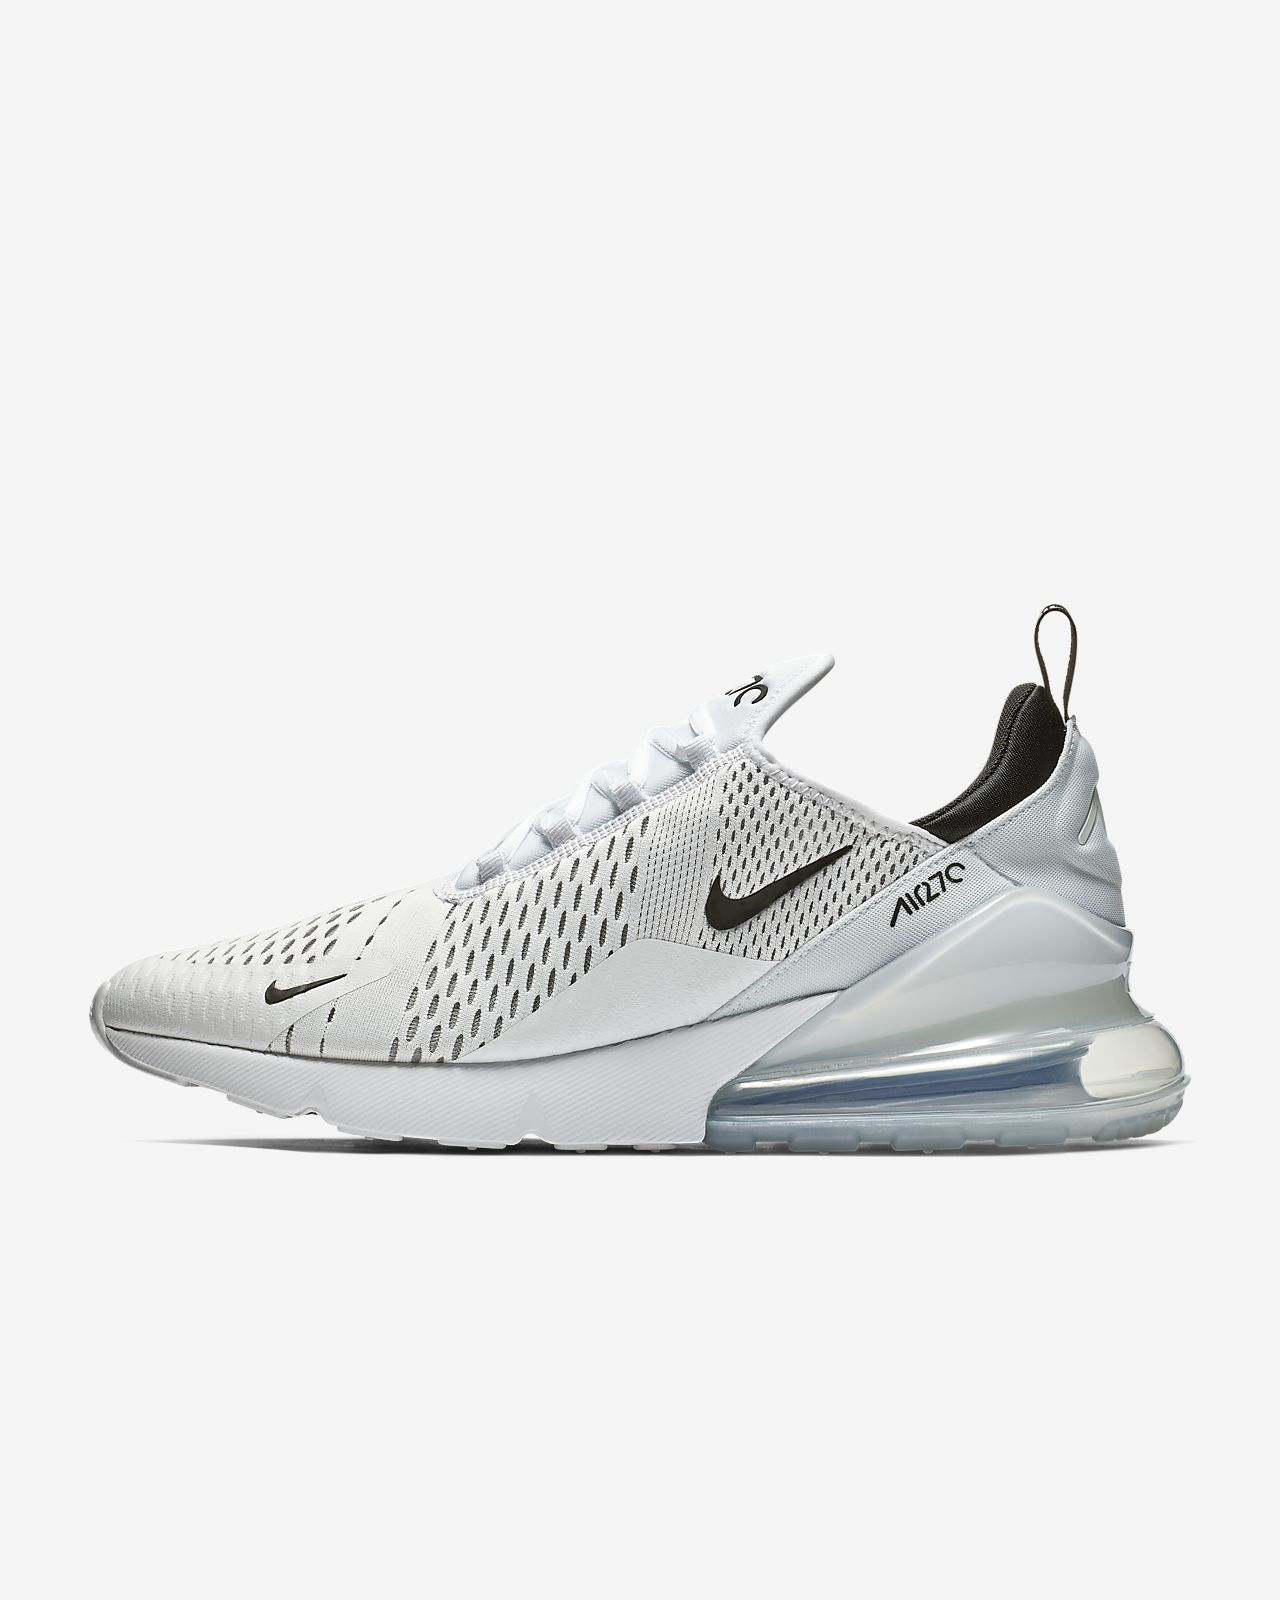 93f16583fb Nike Air Max 270 Men's Shoe. Nike.com GB